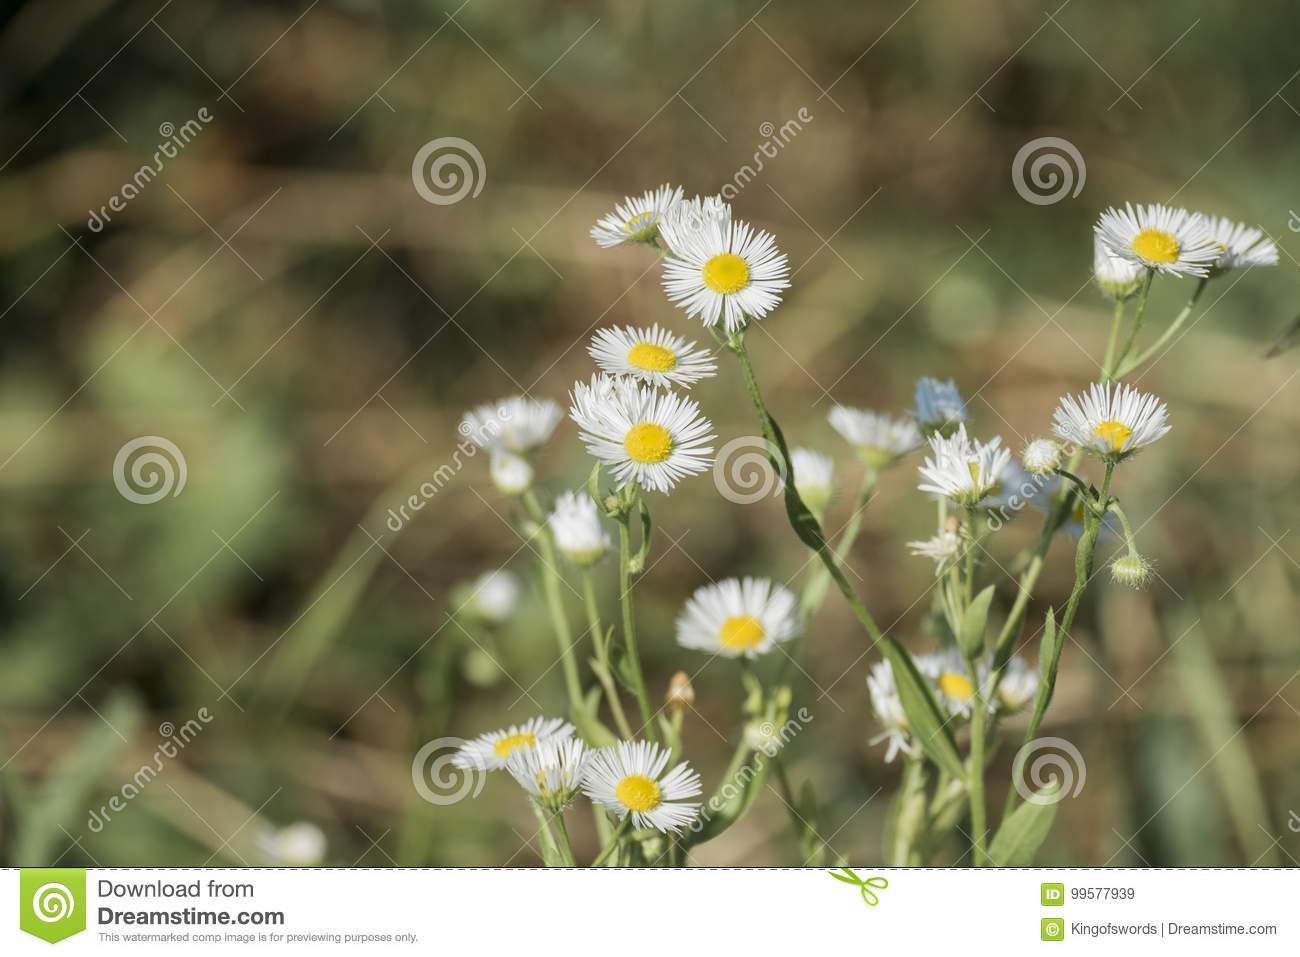 Miniature White Flowers With Small Petals And Yellow Centers